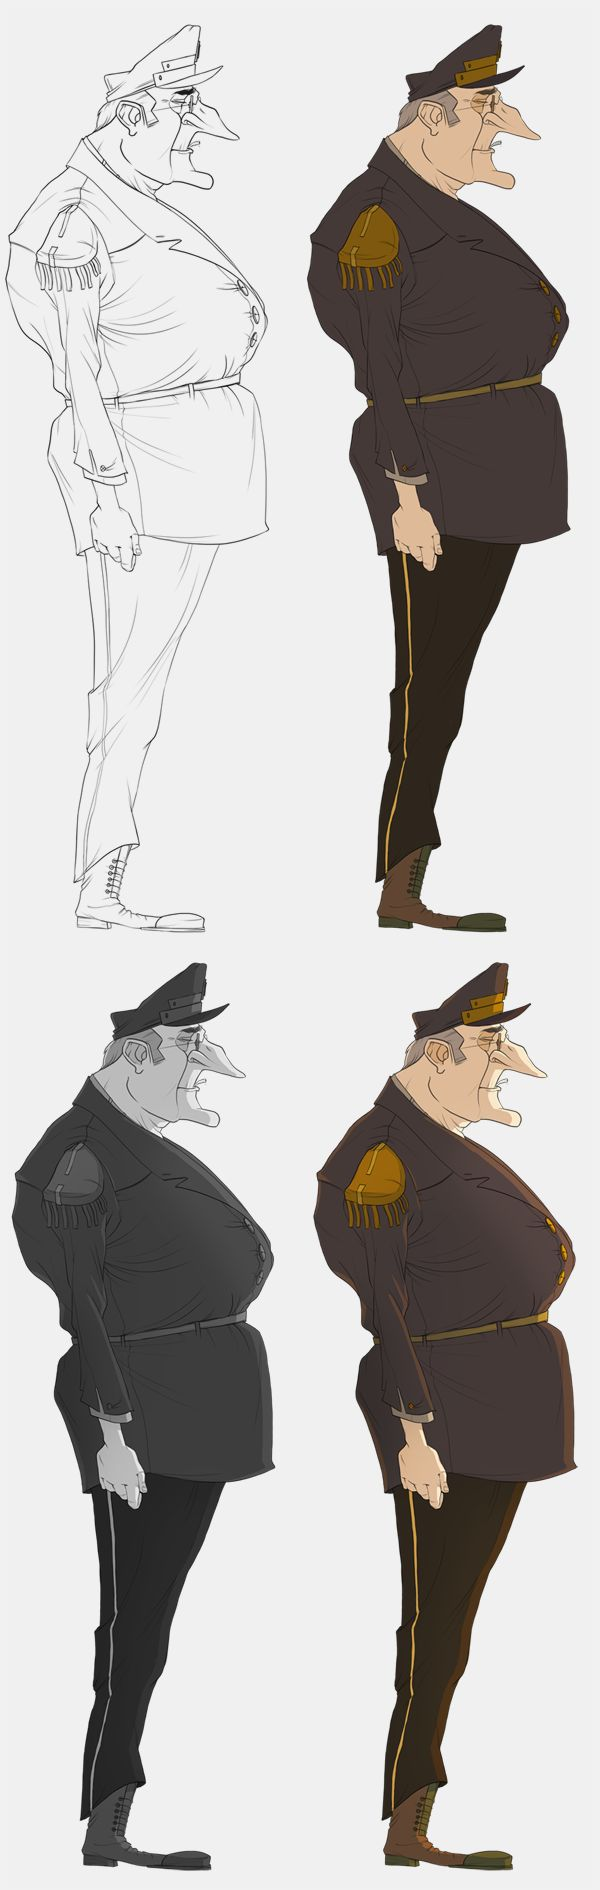 Cartoon Character Design Process : Best images about cartoon on pinterest rio